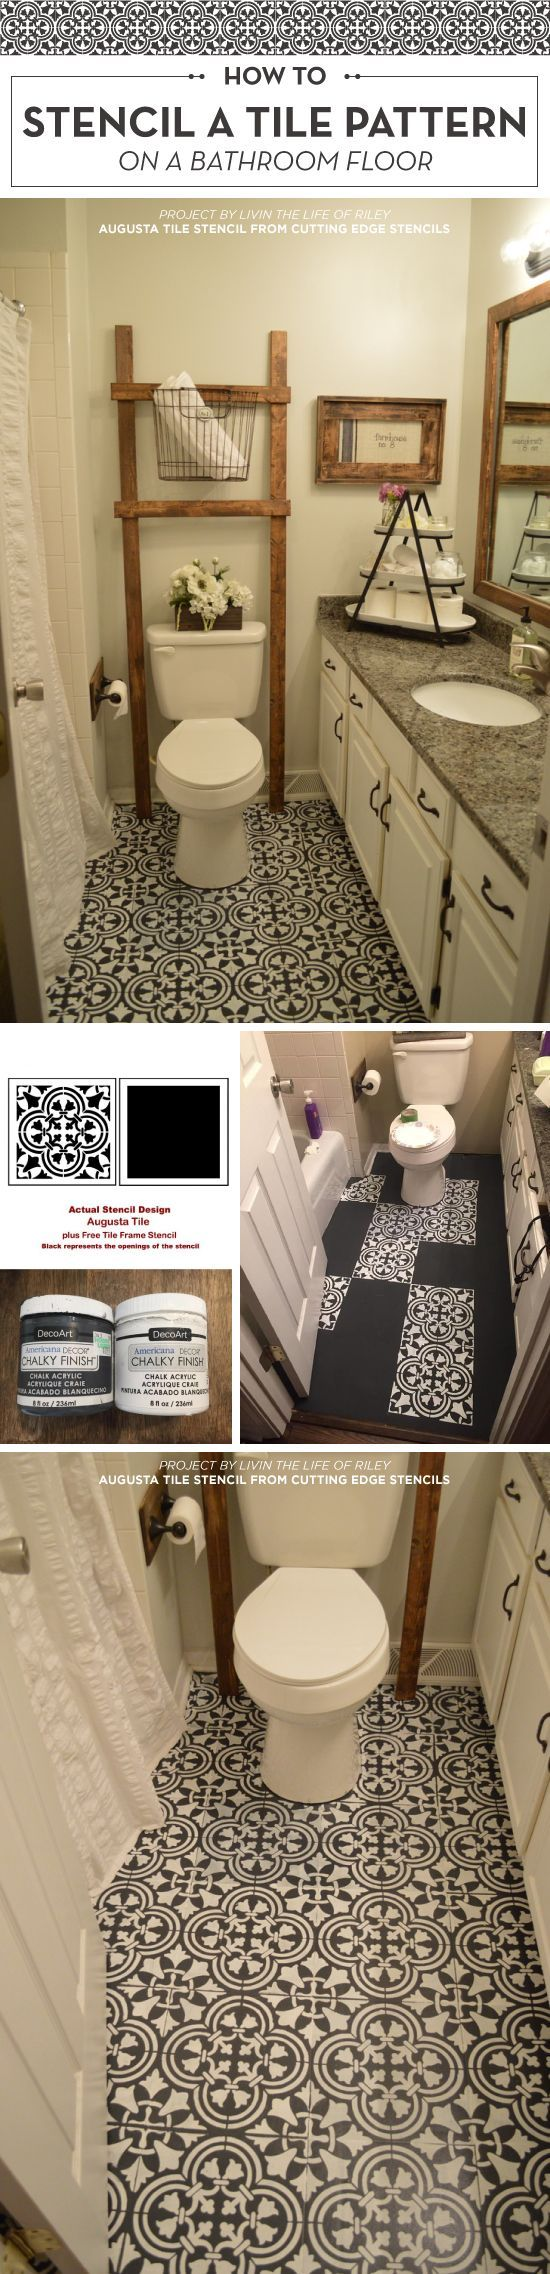 White with grey - Augusta Tile Stencil pattern. http://www.cuttingedgestencils.stfi.re/augusta-tile-stencil-design-patchwork-tiles-stencils.html